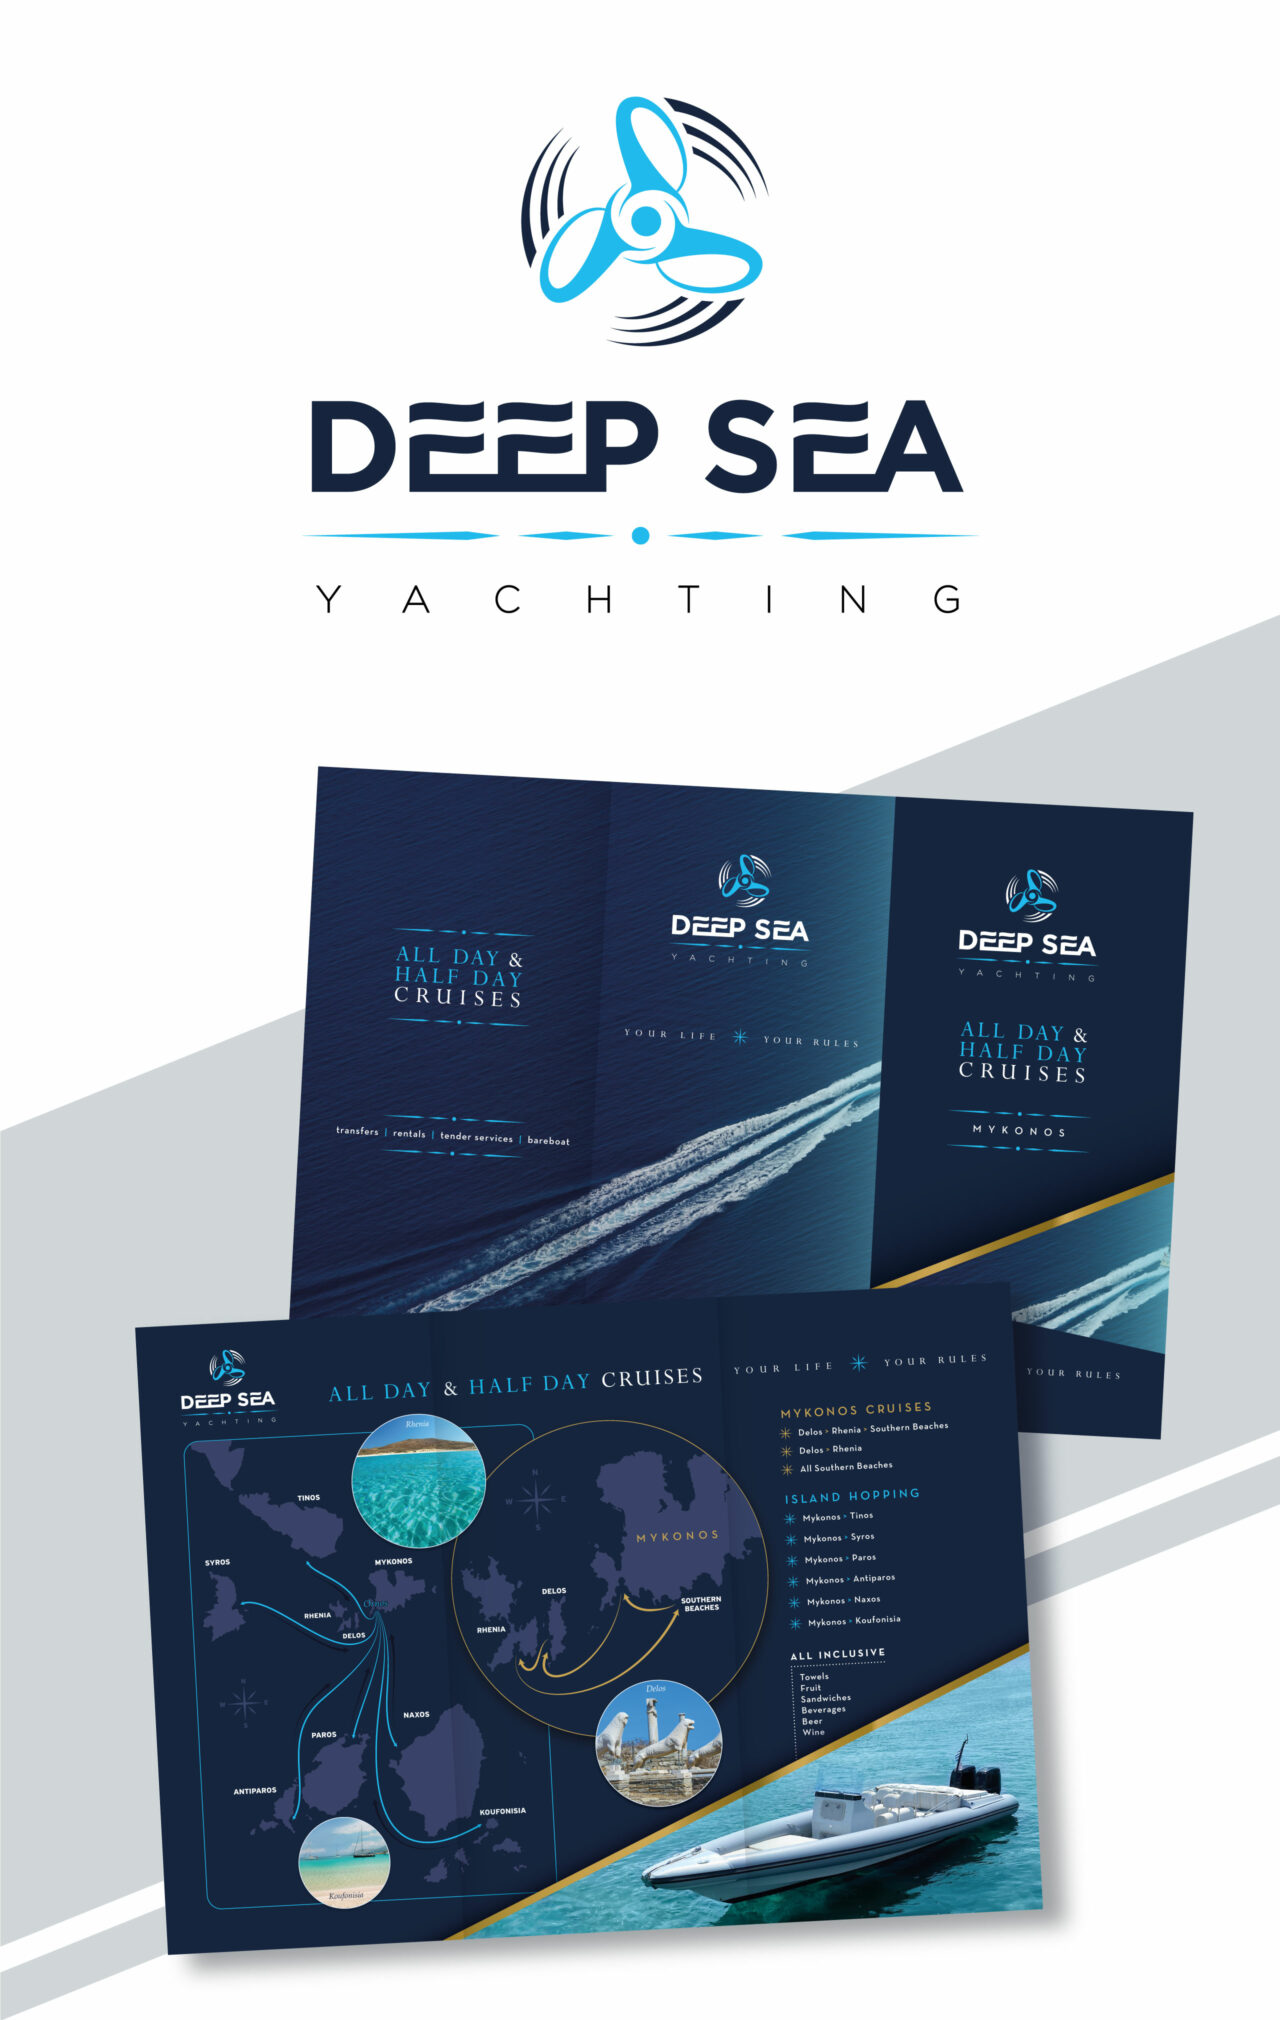 Yachting branding design for Deep Sea. Visual brand identity and custom maps design by Plus Gravity